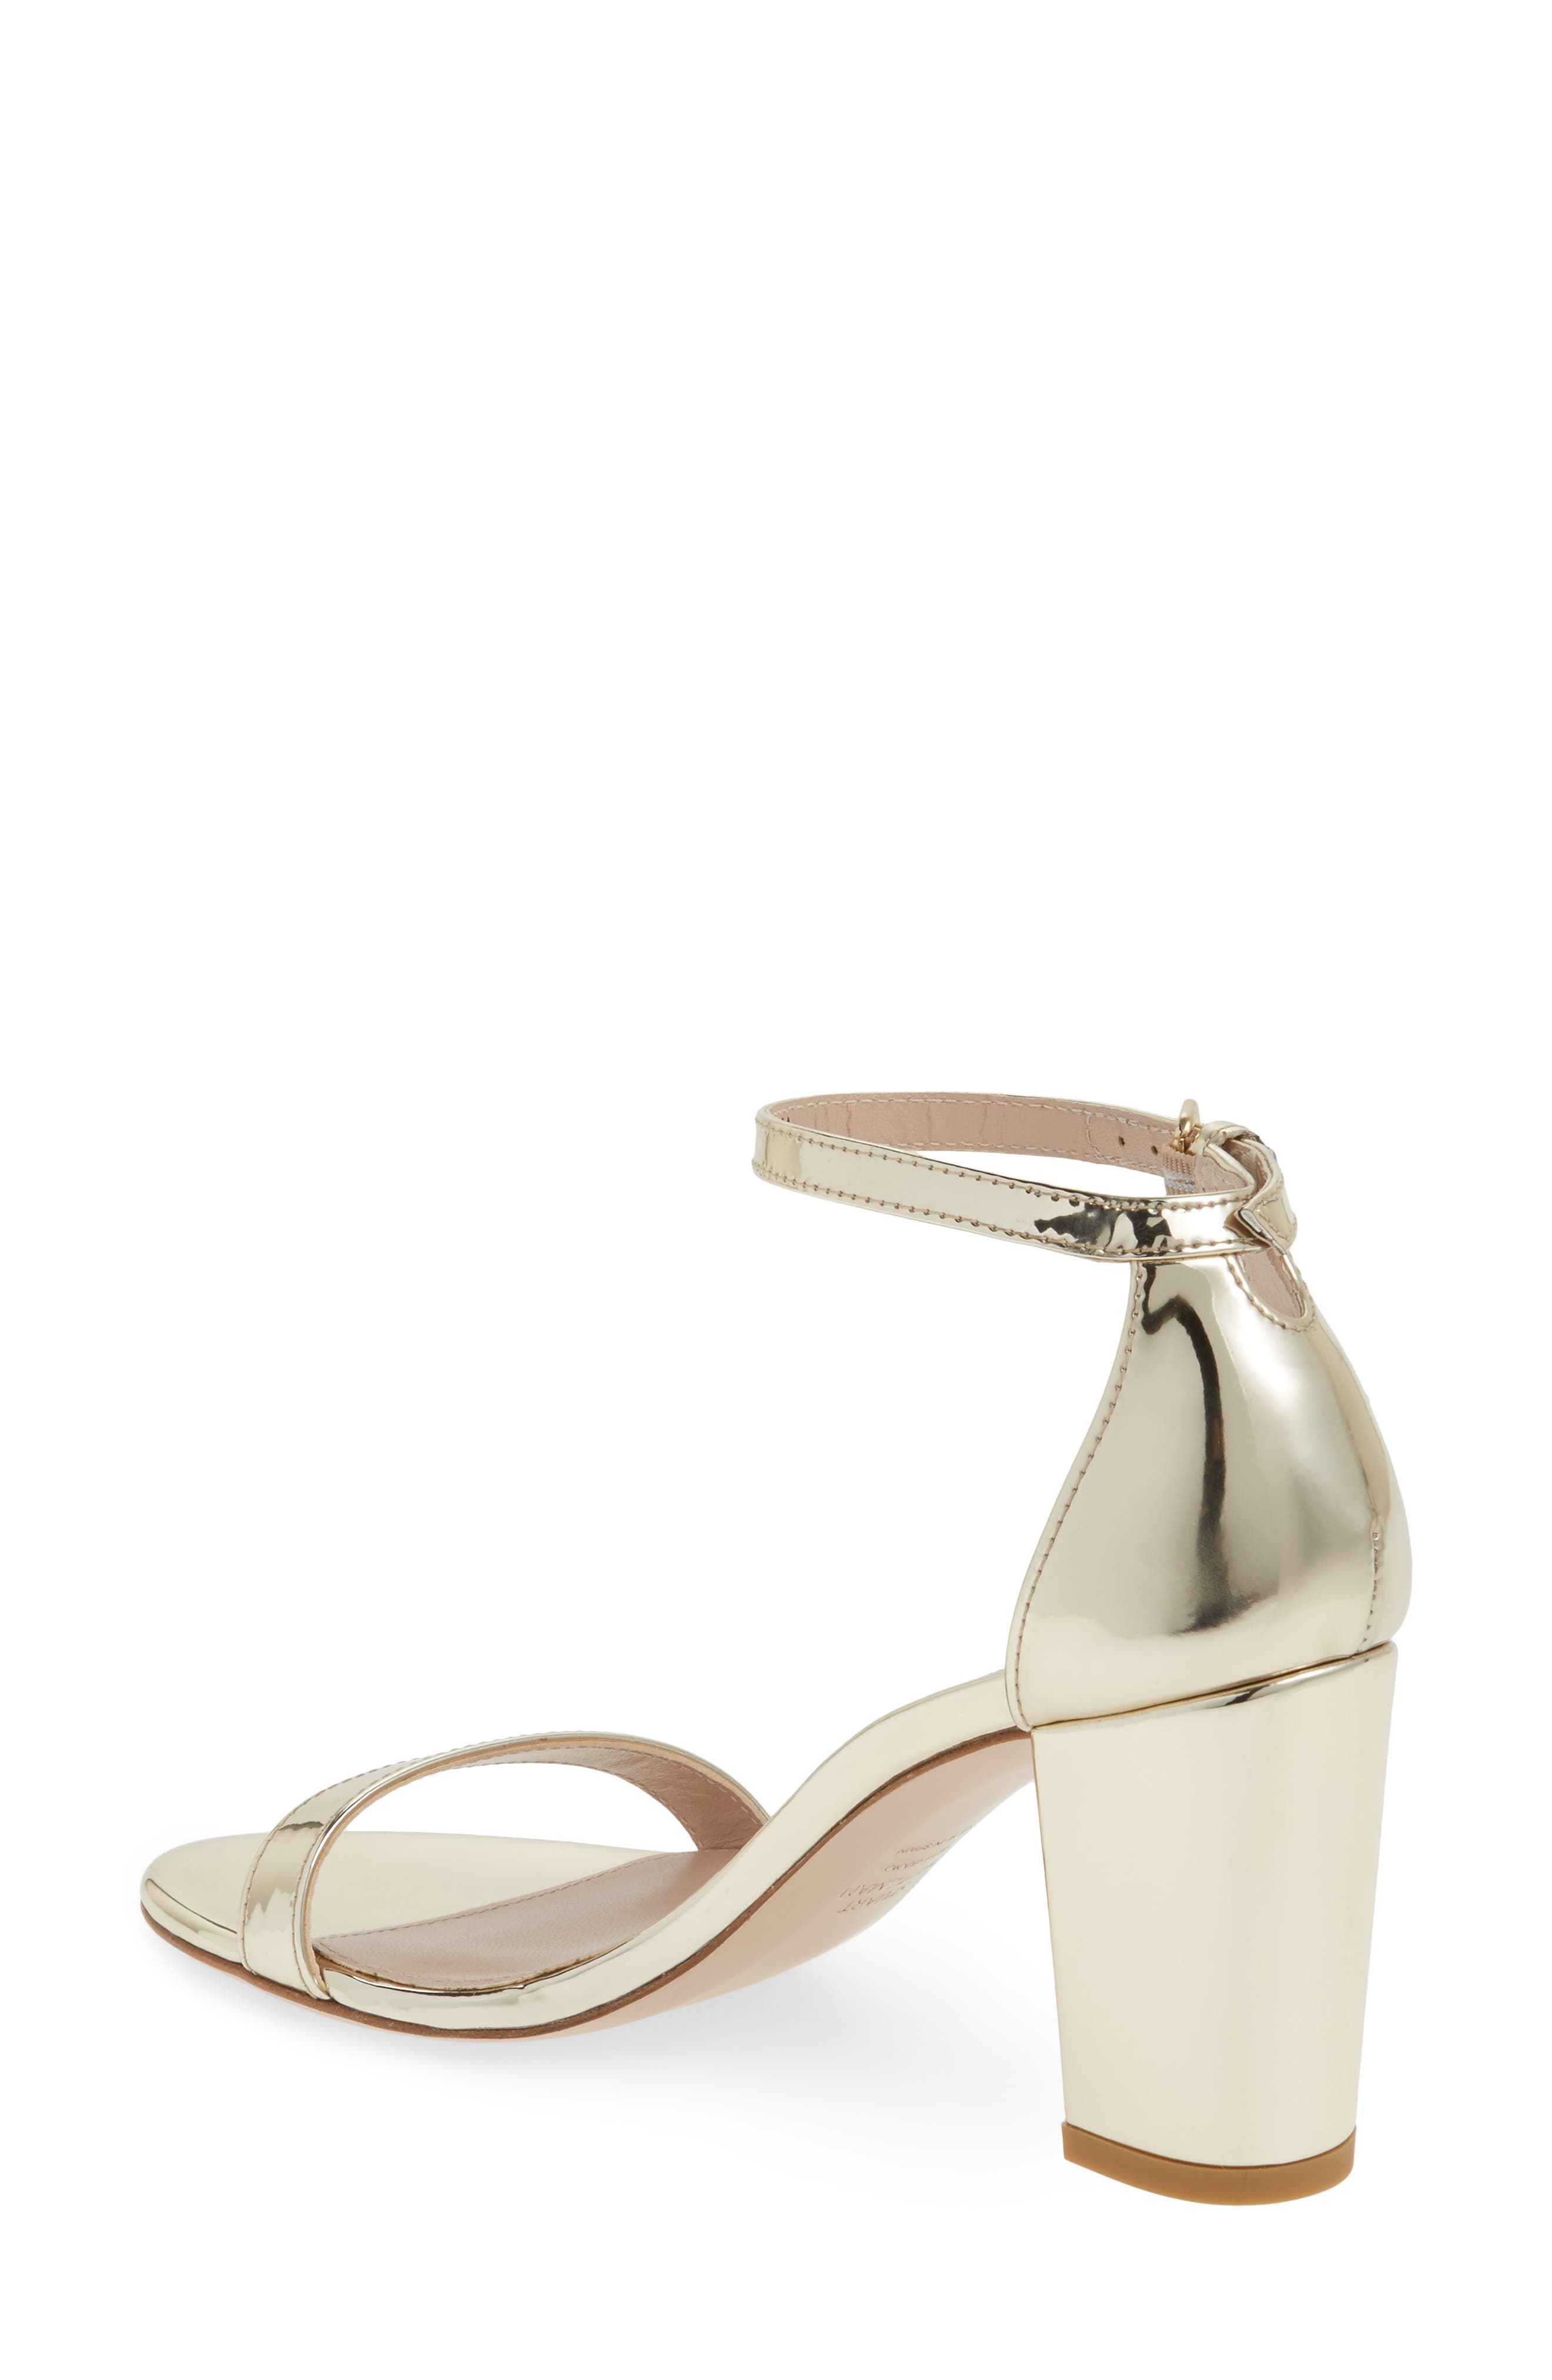 NearlyNude Ankle Strap Sandal,                             Alternate thumbnail 36, color,